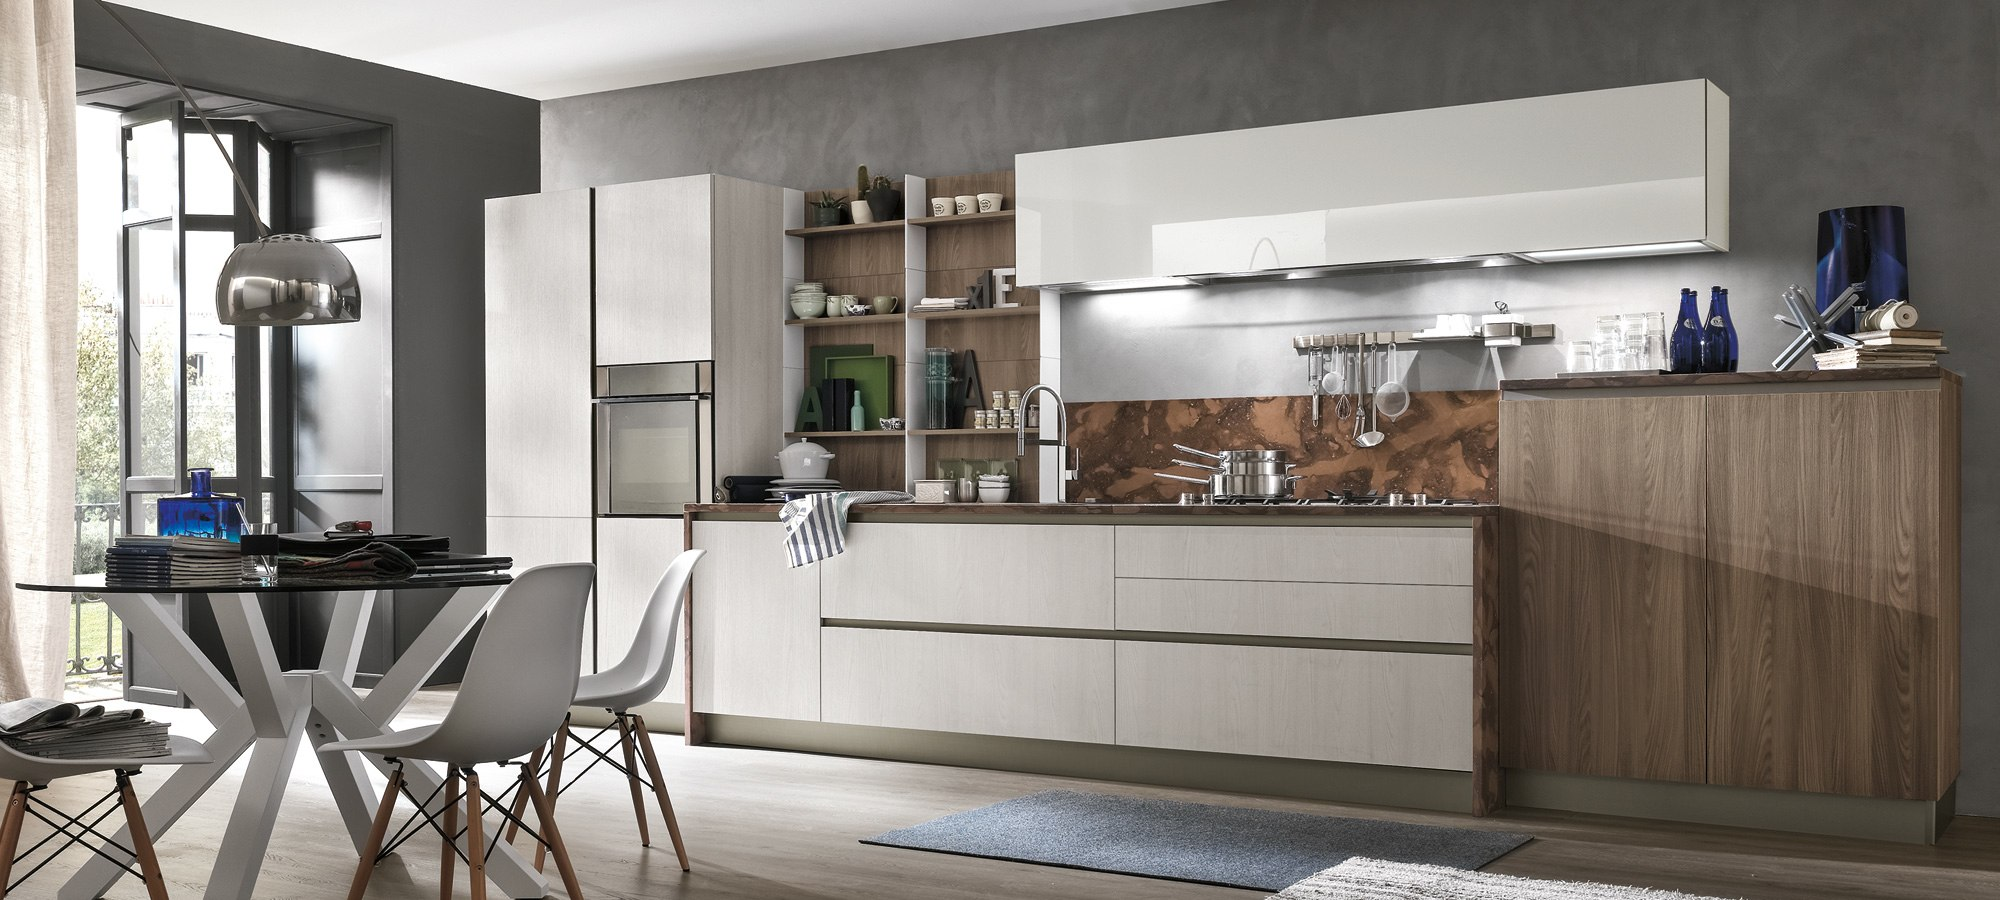 Kitchens Drummoyne Modern Kitchen Infinity 41 Eurolife Kitchens Sydney